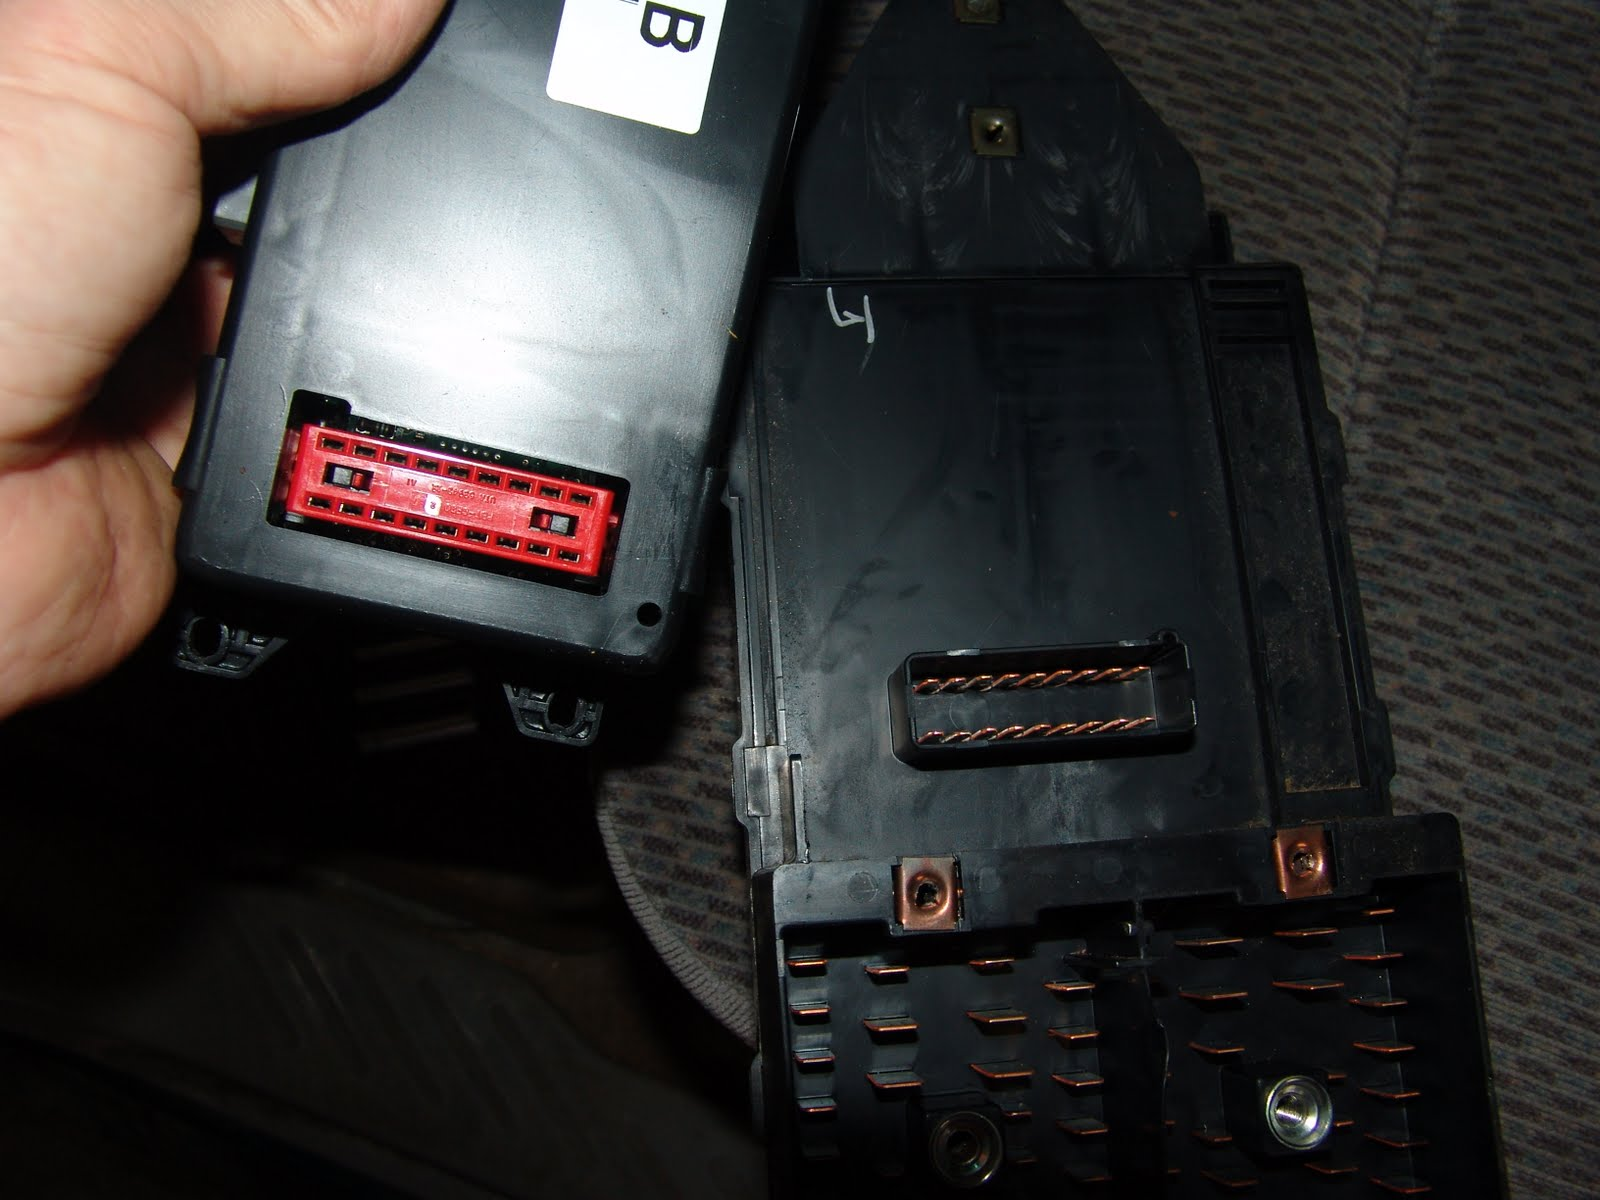 further F Horn in addition Dsc in addition Dsc in addition Dsc. on 1997 ford f 150 gem module